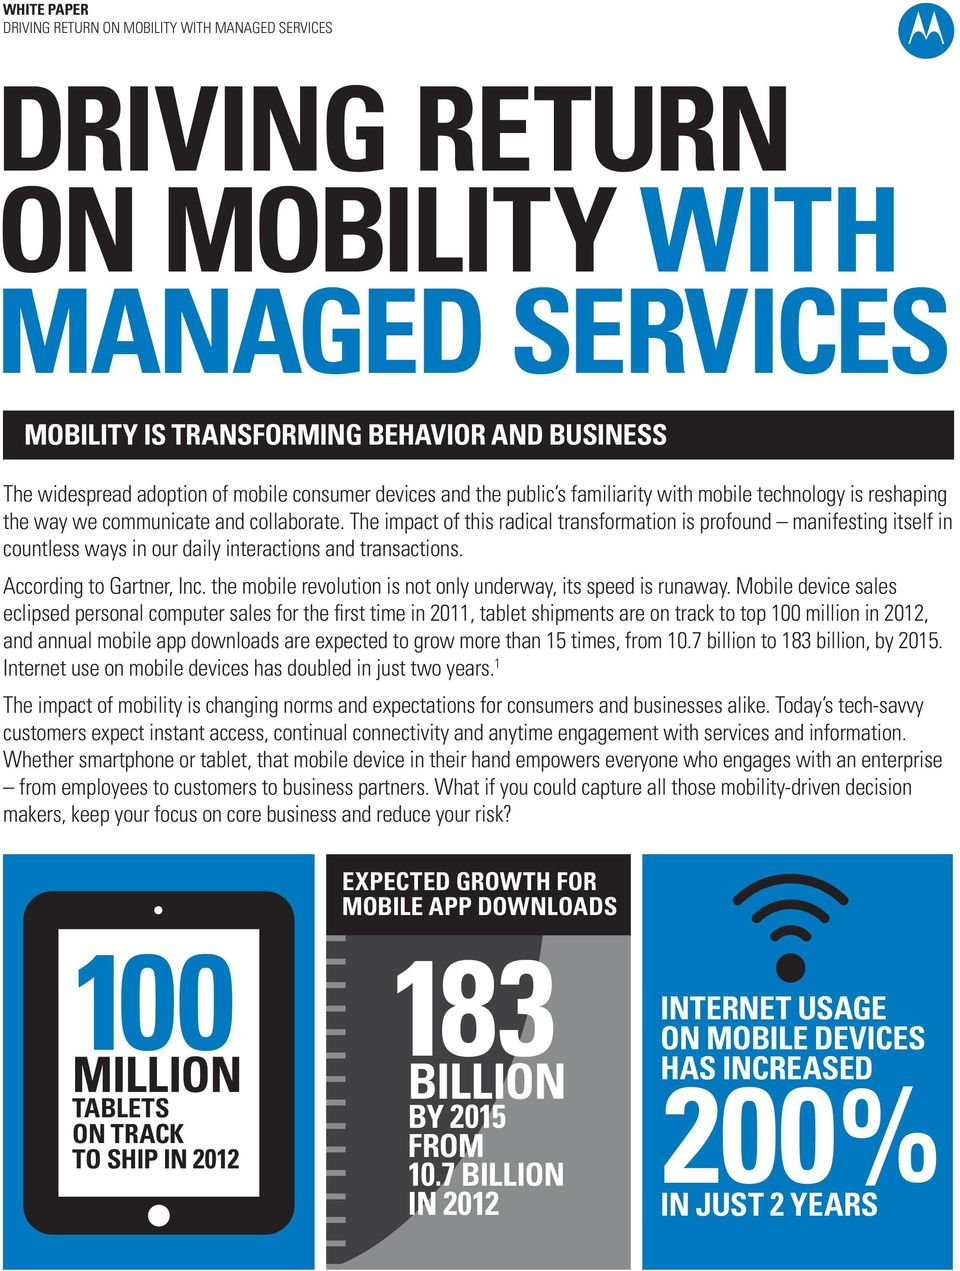 According to Gartner, Inc. the mobile revolution is not only underway, its speed is runaway.